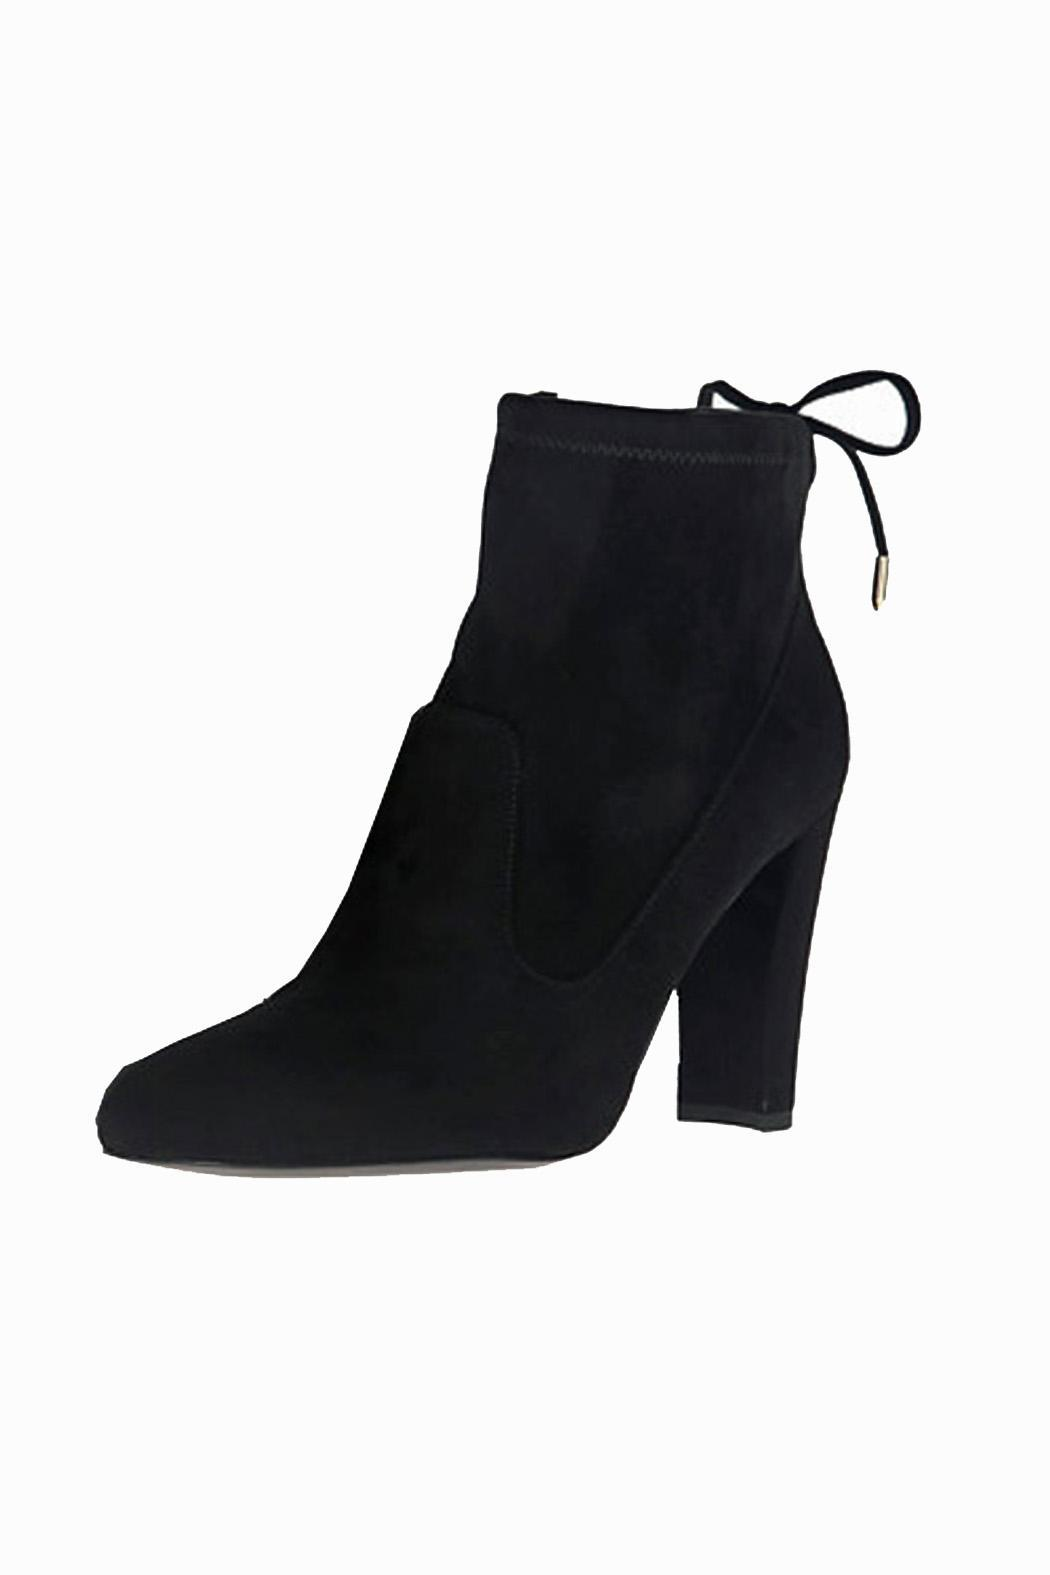 IVANKA TRUMP Black Suede Booties - Main Image